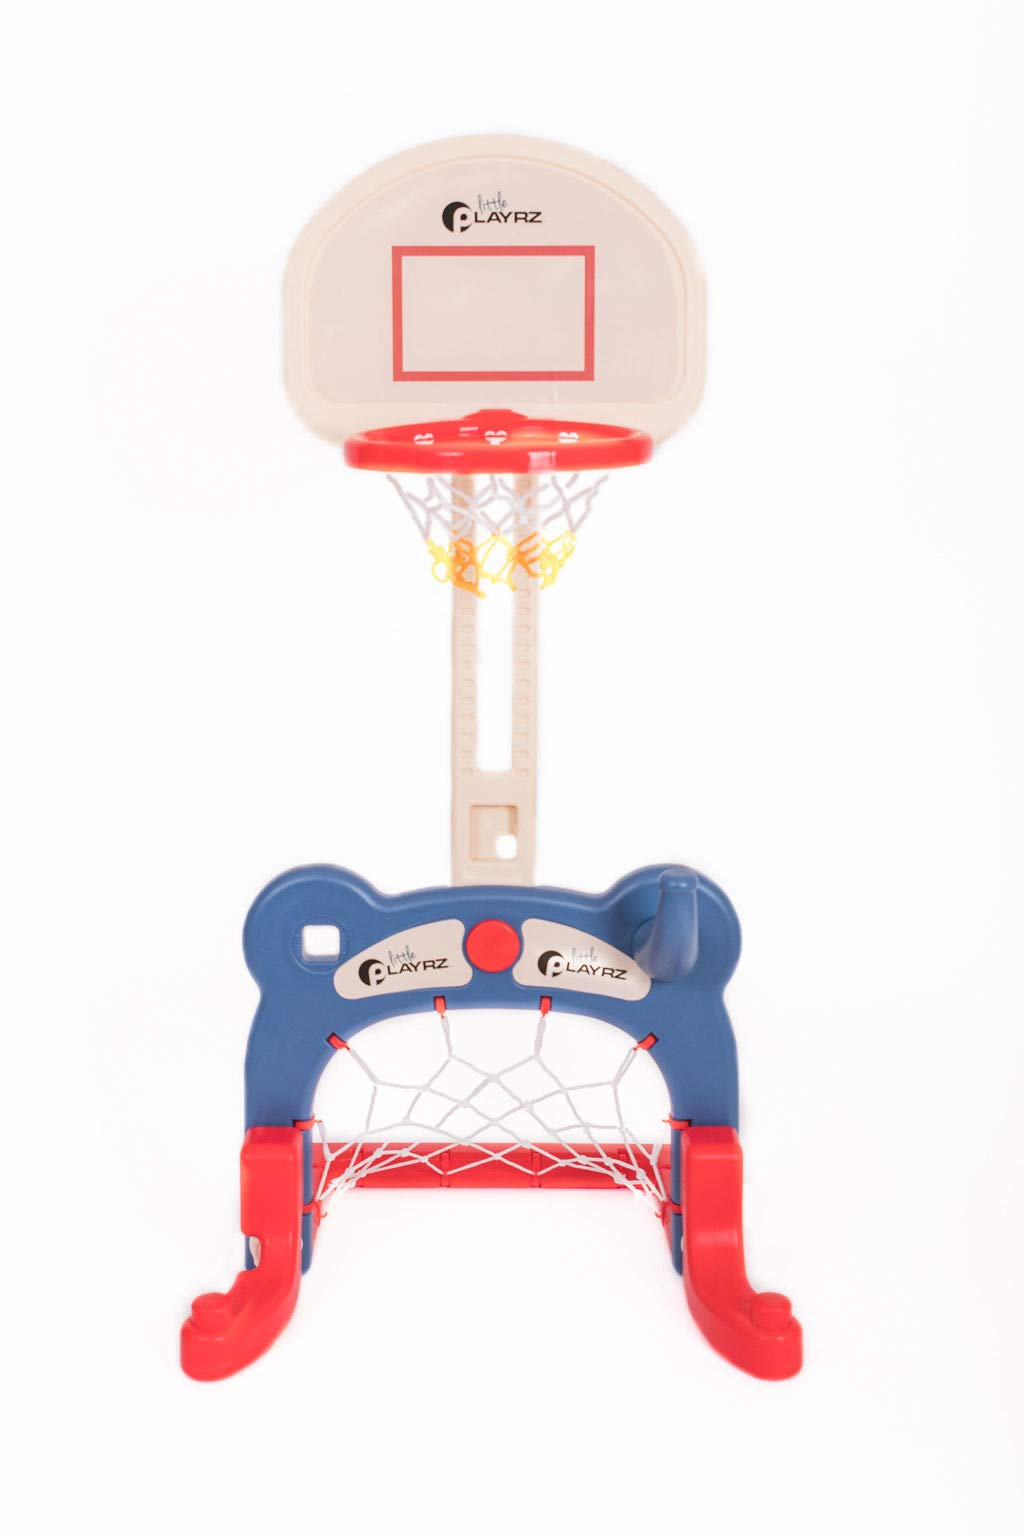 Kids 3-in-1 Sports Center: Basketball Hoop, Soccer Goal, Ring Toss Playset by Playrz (Image #1)